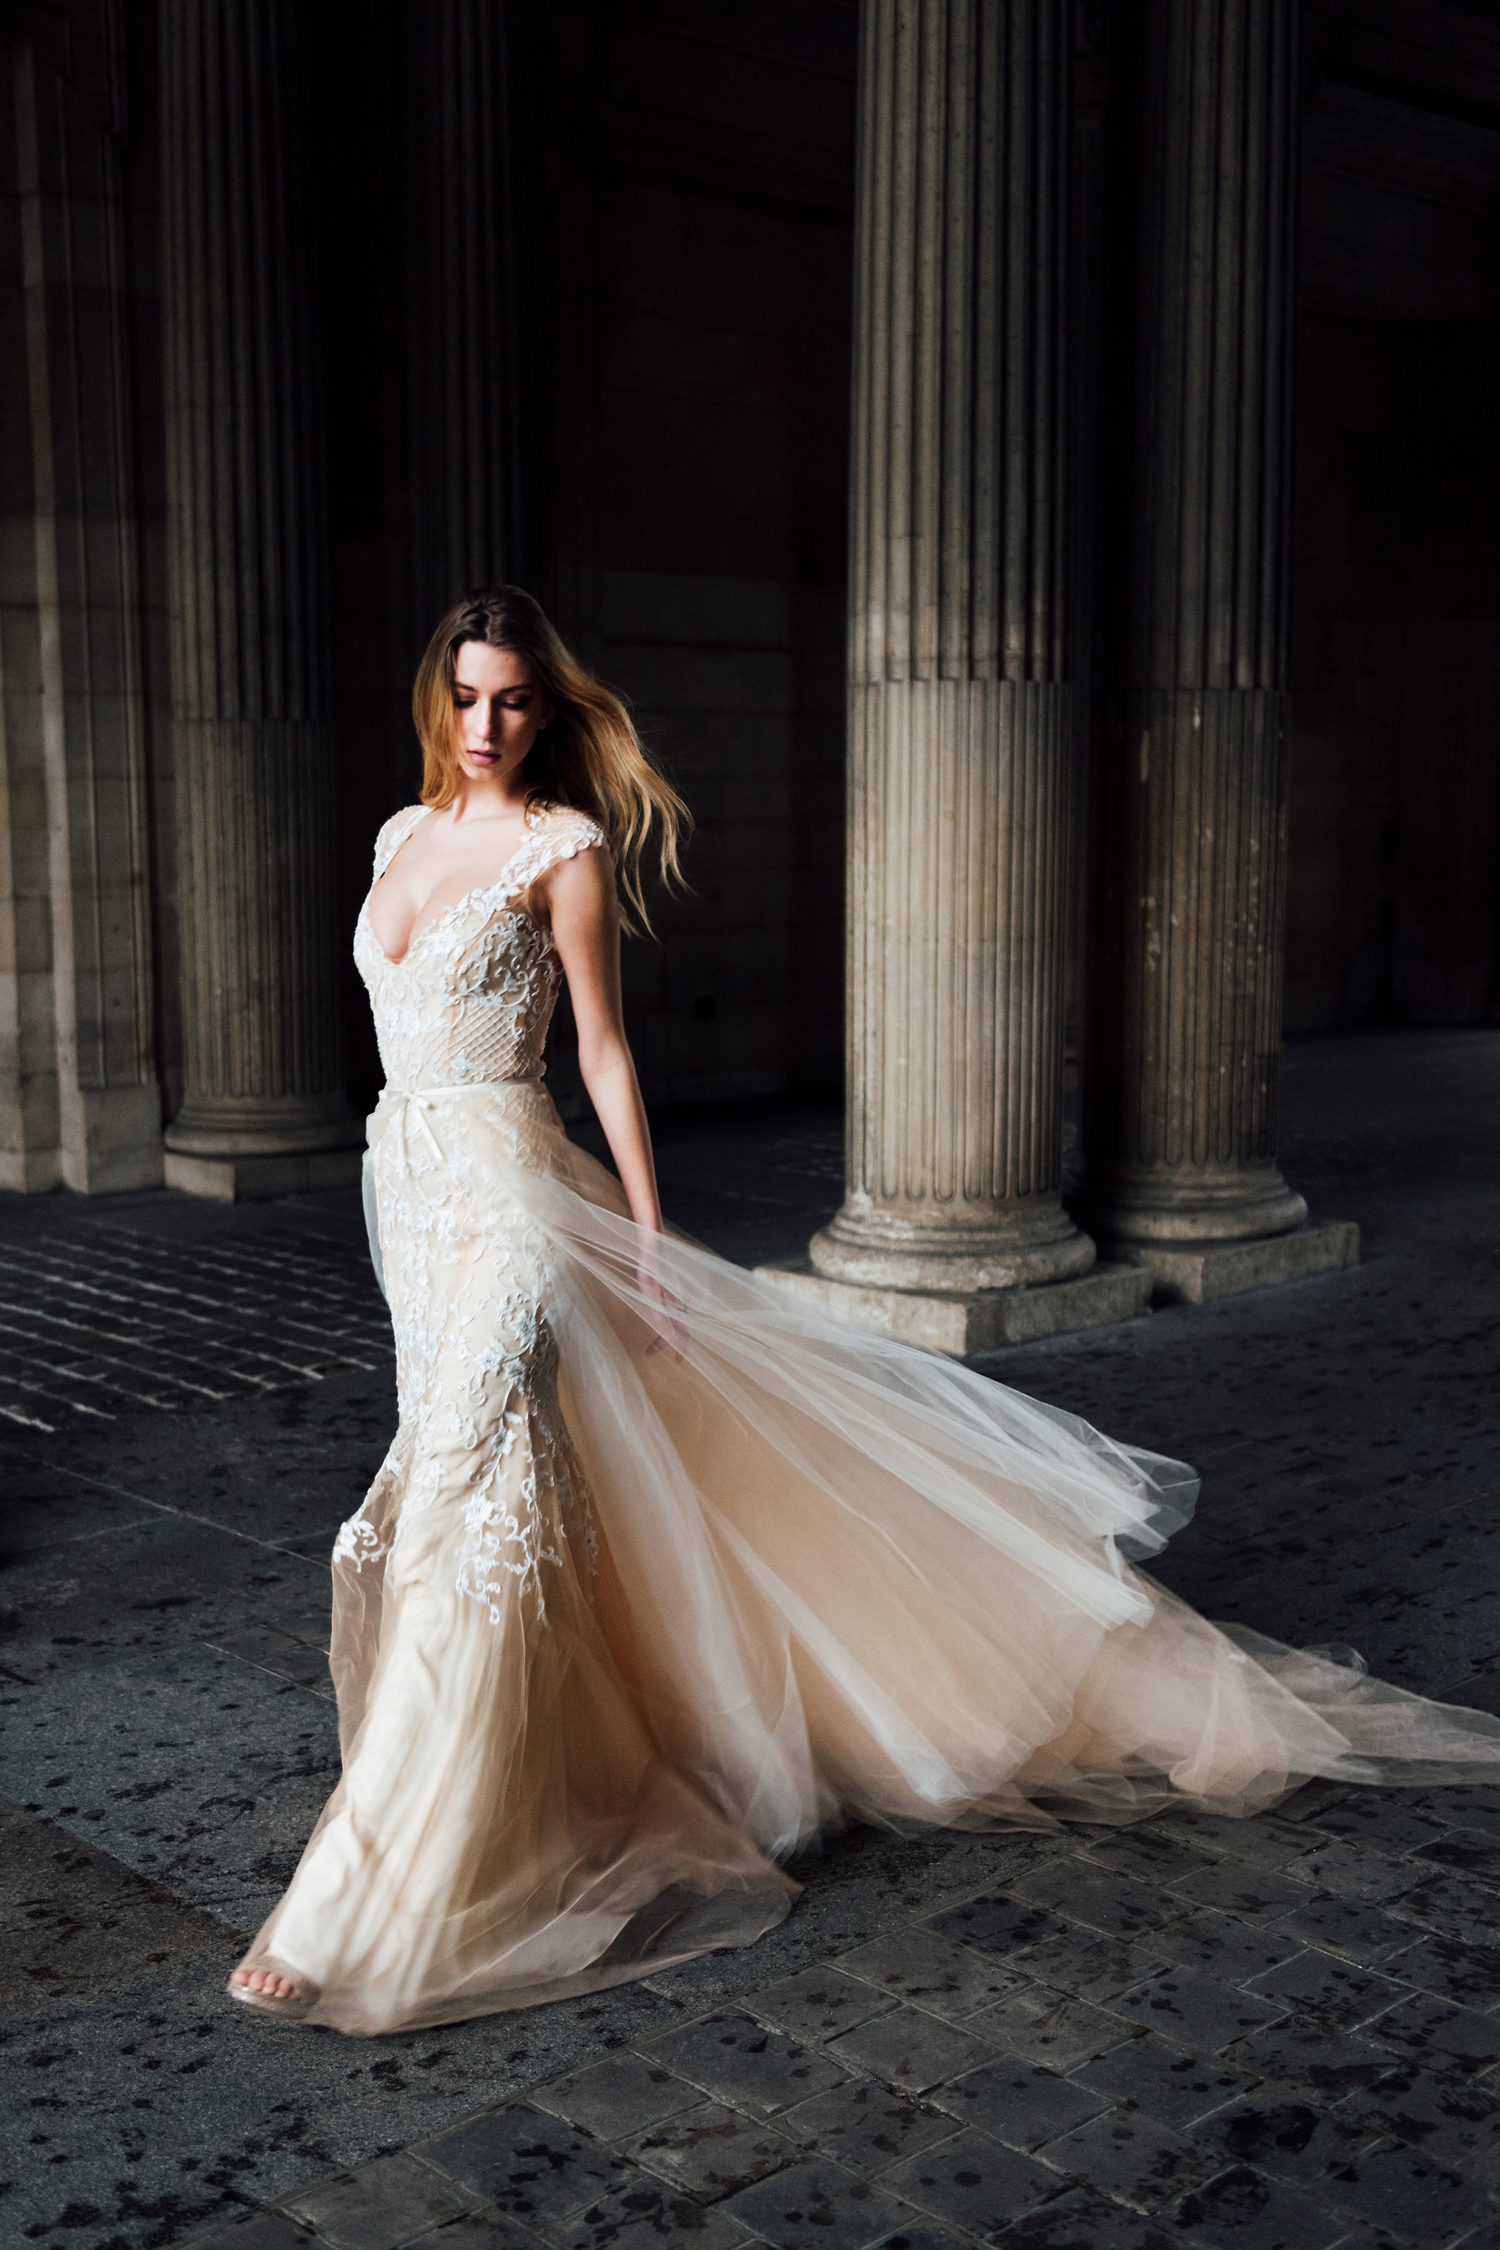 katie mitchell monique lhuillier bridal paris france wedding photographer_10.jpg